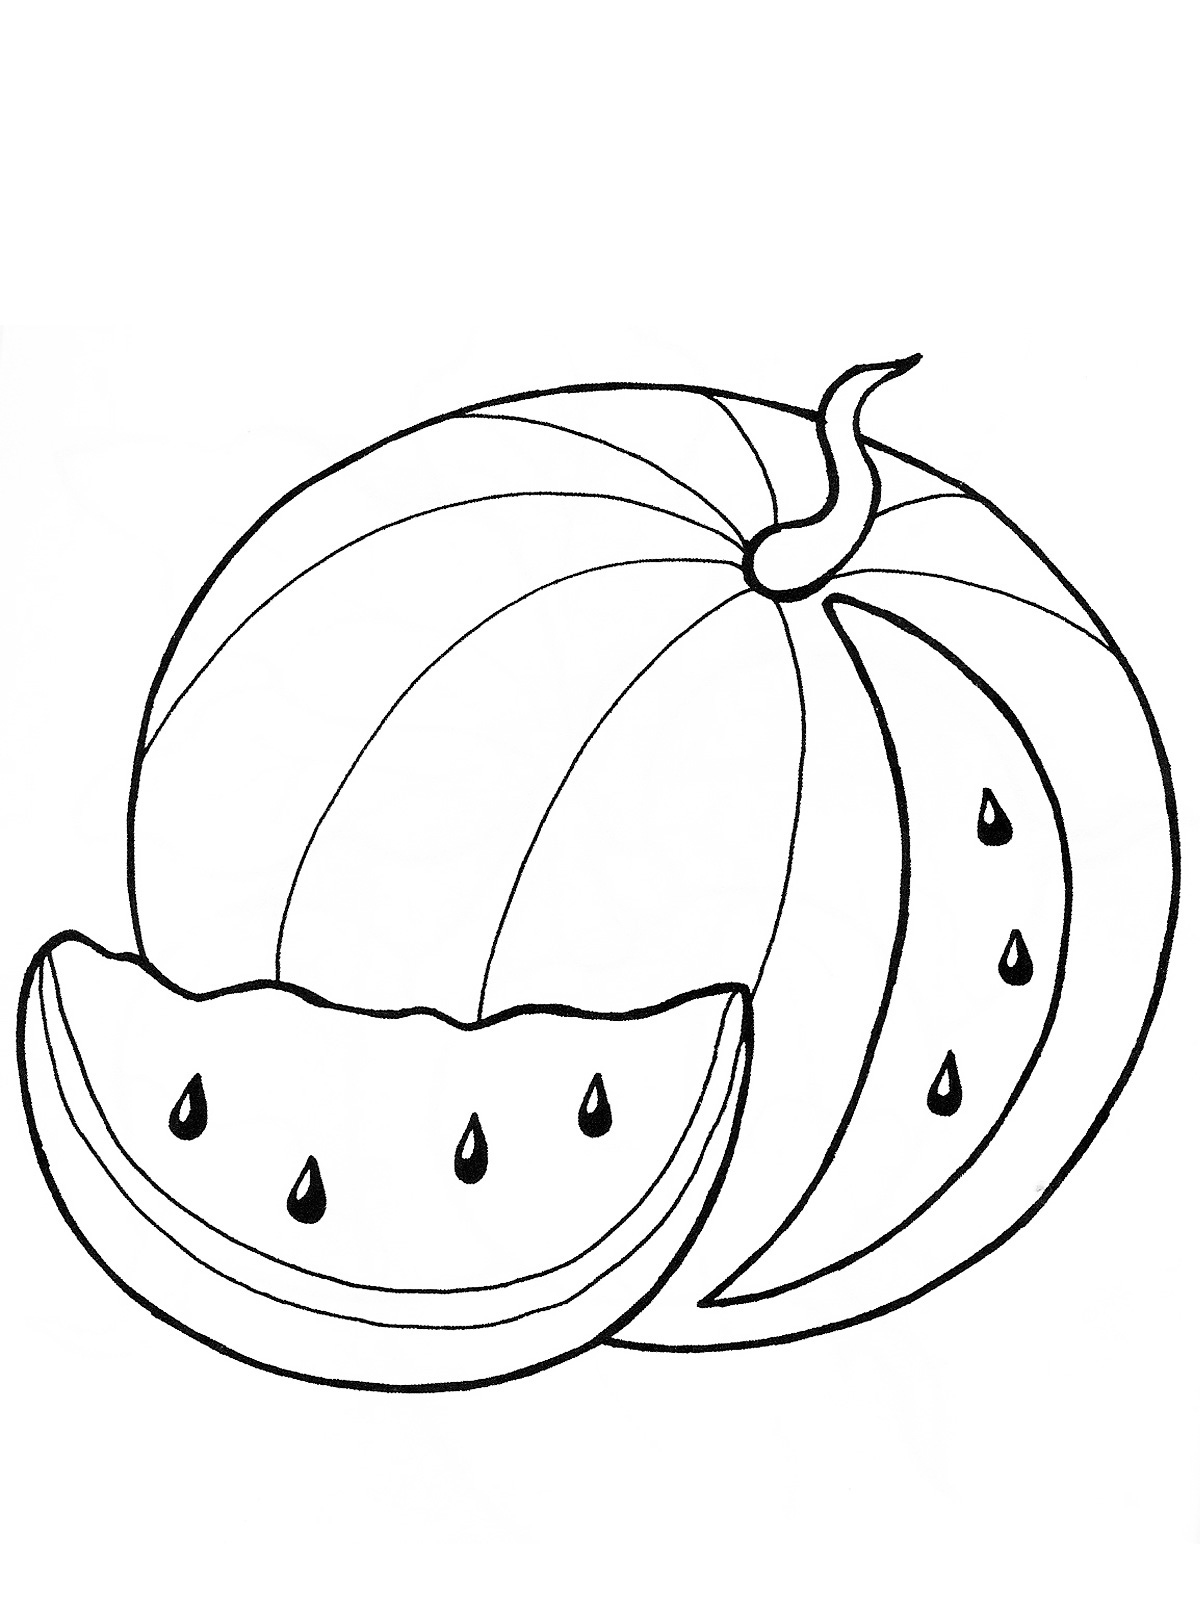 watermelon for coloring watermelon coloring pages to download and print for free coloring for watermelon